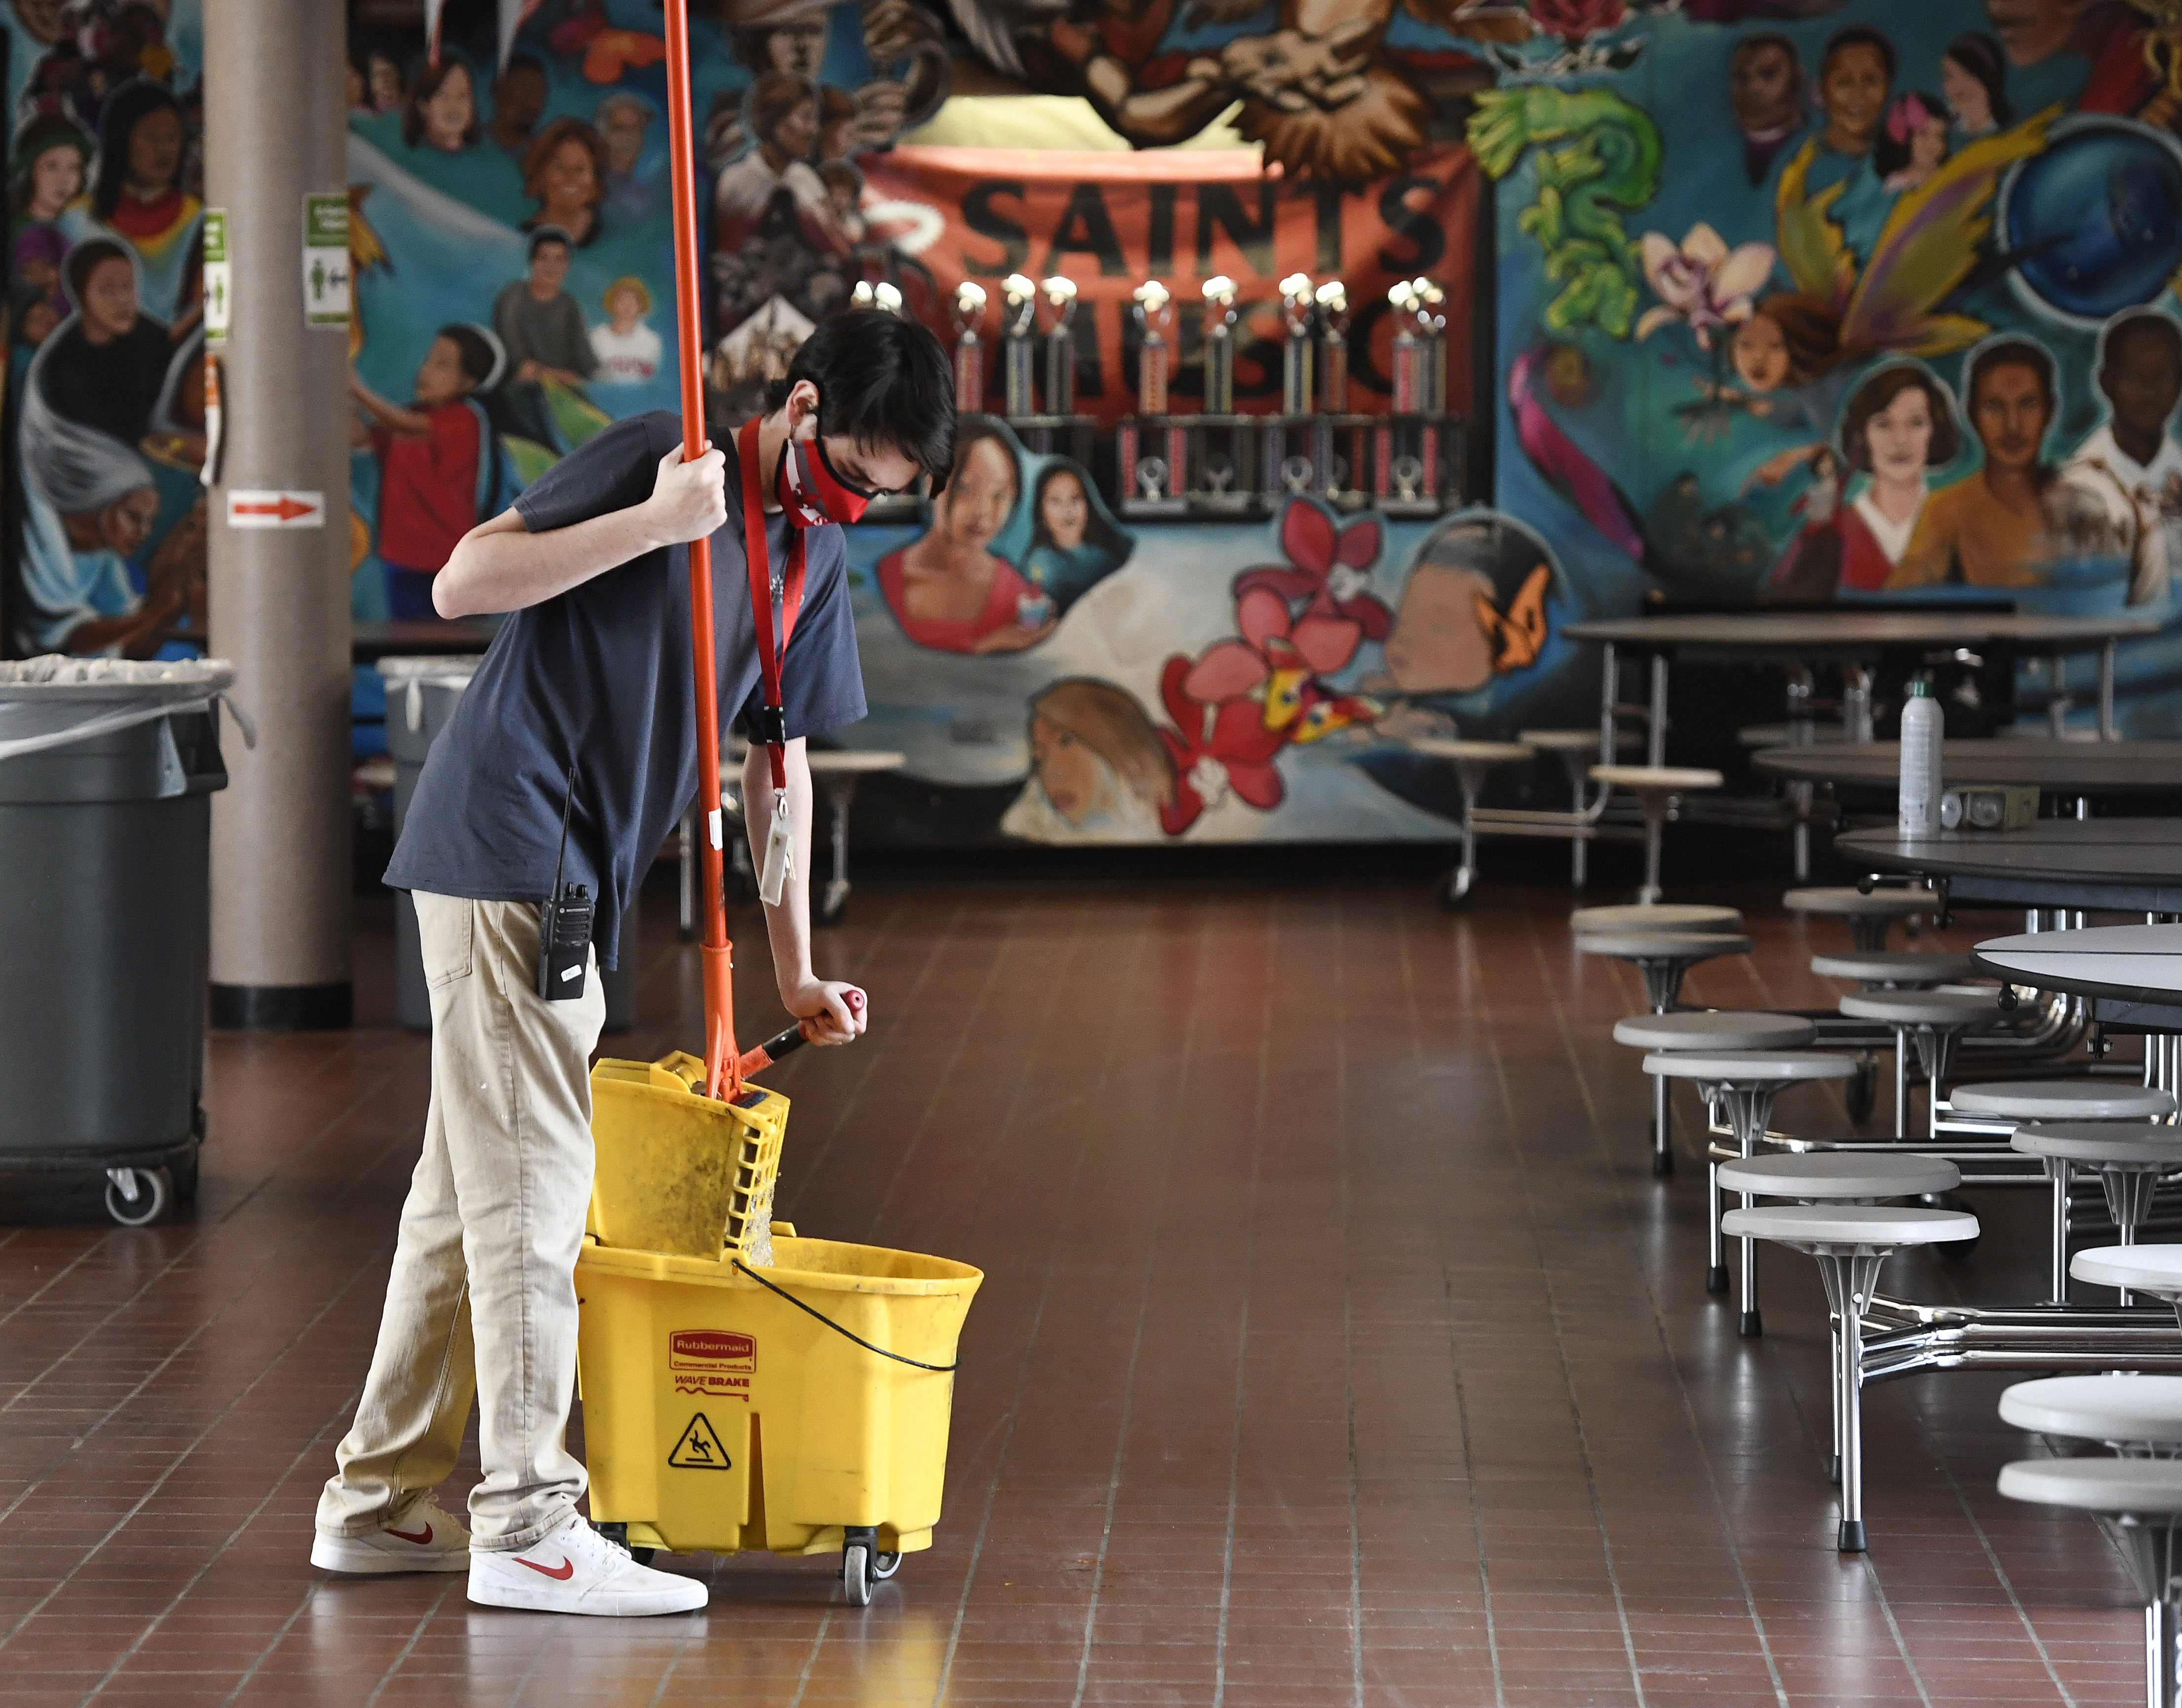 """Custodian wearing mask squeezes a mop into a bucket in a classroom decorated with a colorful full-wall mural saying """"Saints."""""""